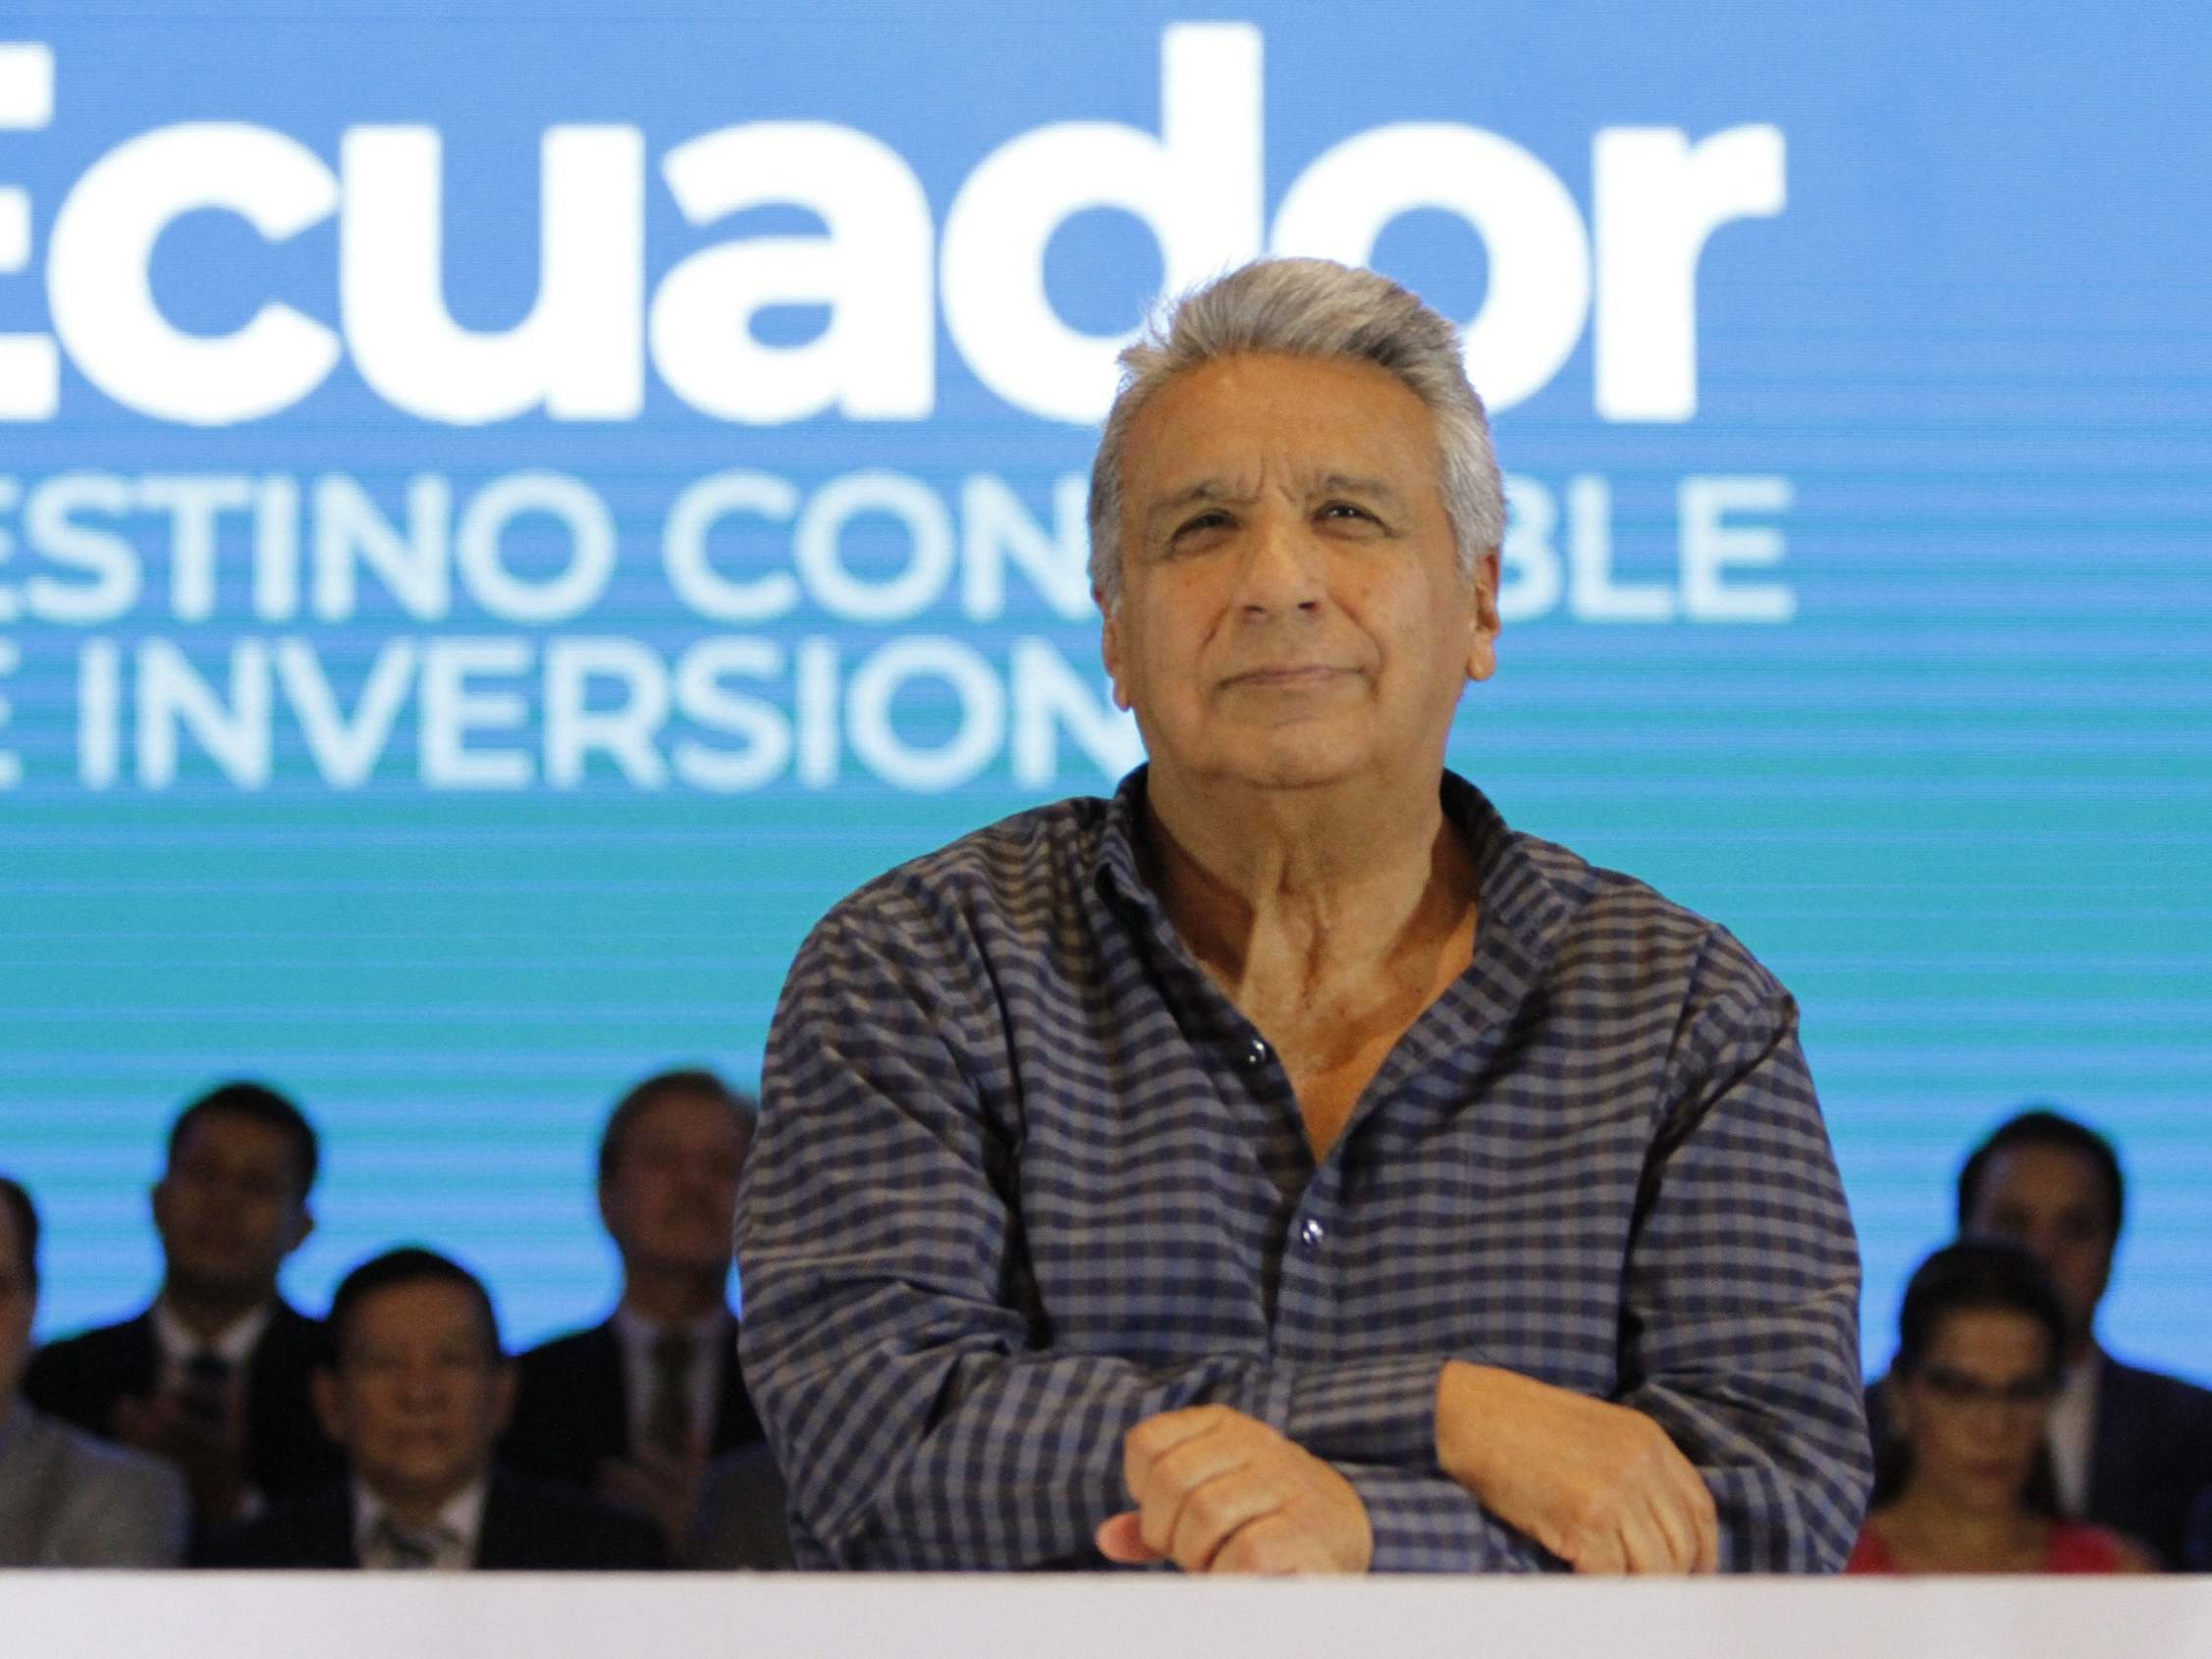 Women Only Report Harassment From Ugly Men Ecuador S President Says The Independent The Independent